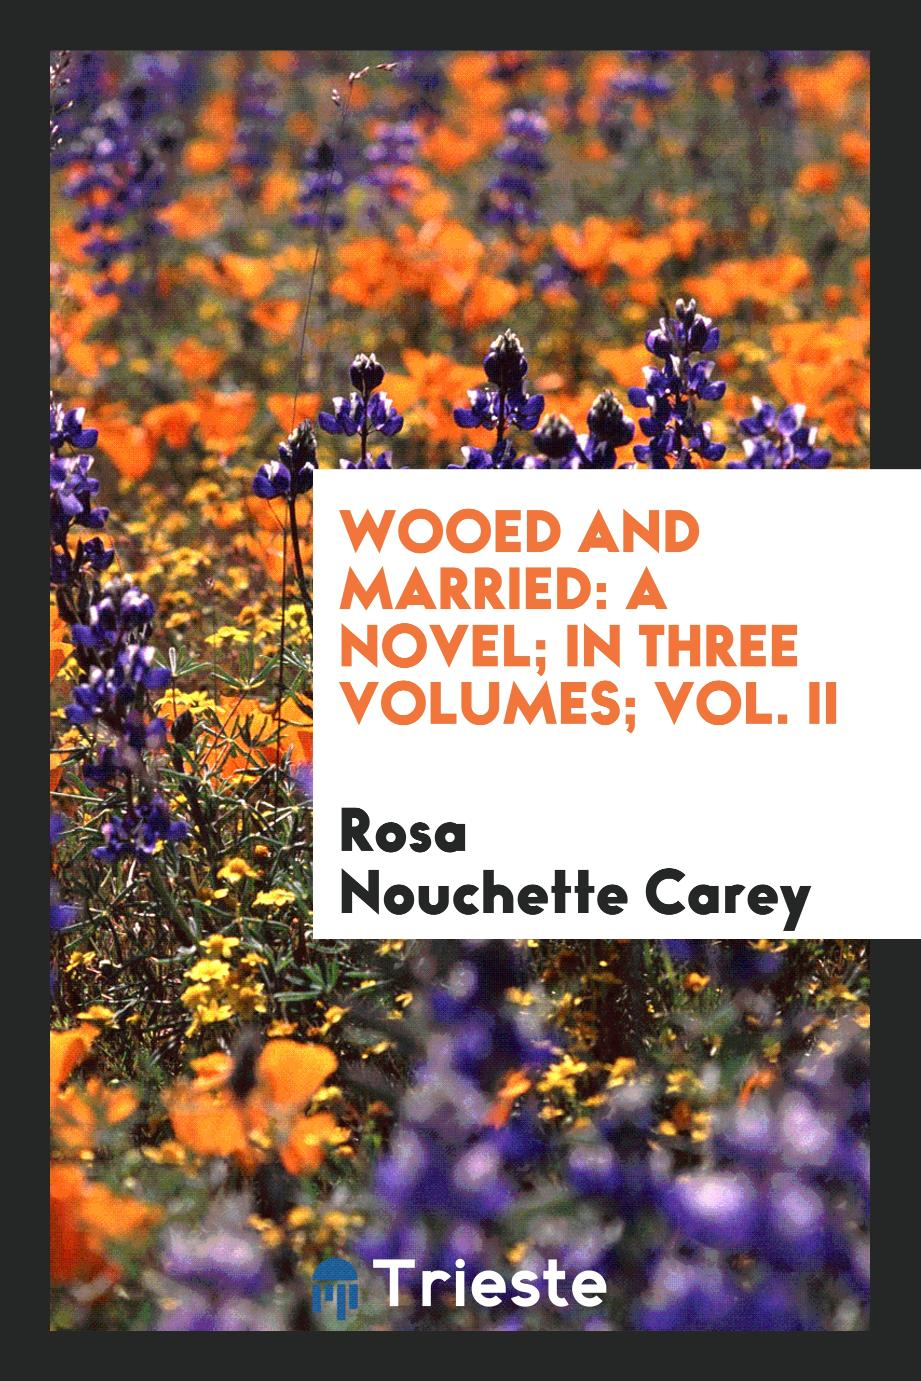 Wooed and married: a novel; in three volumes; Vol. II